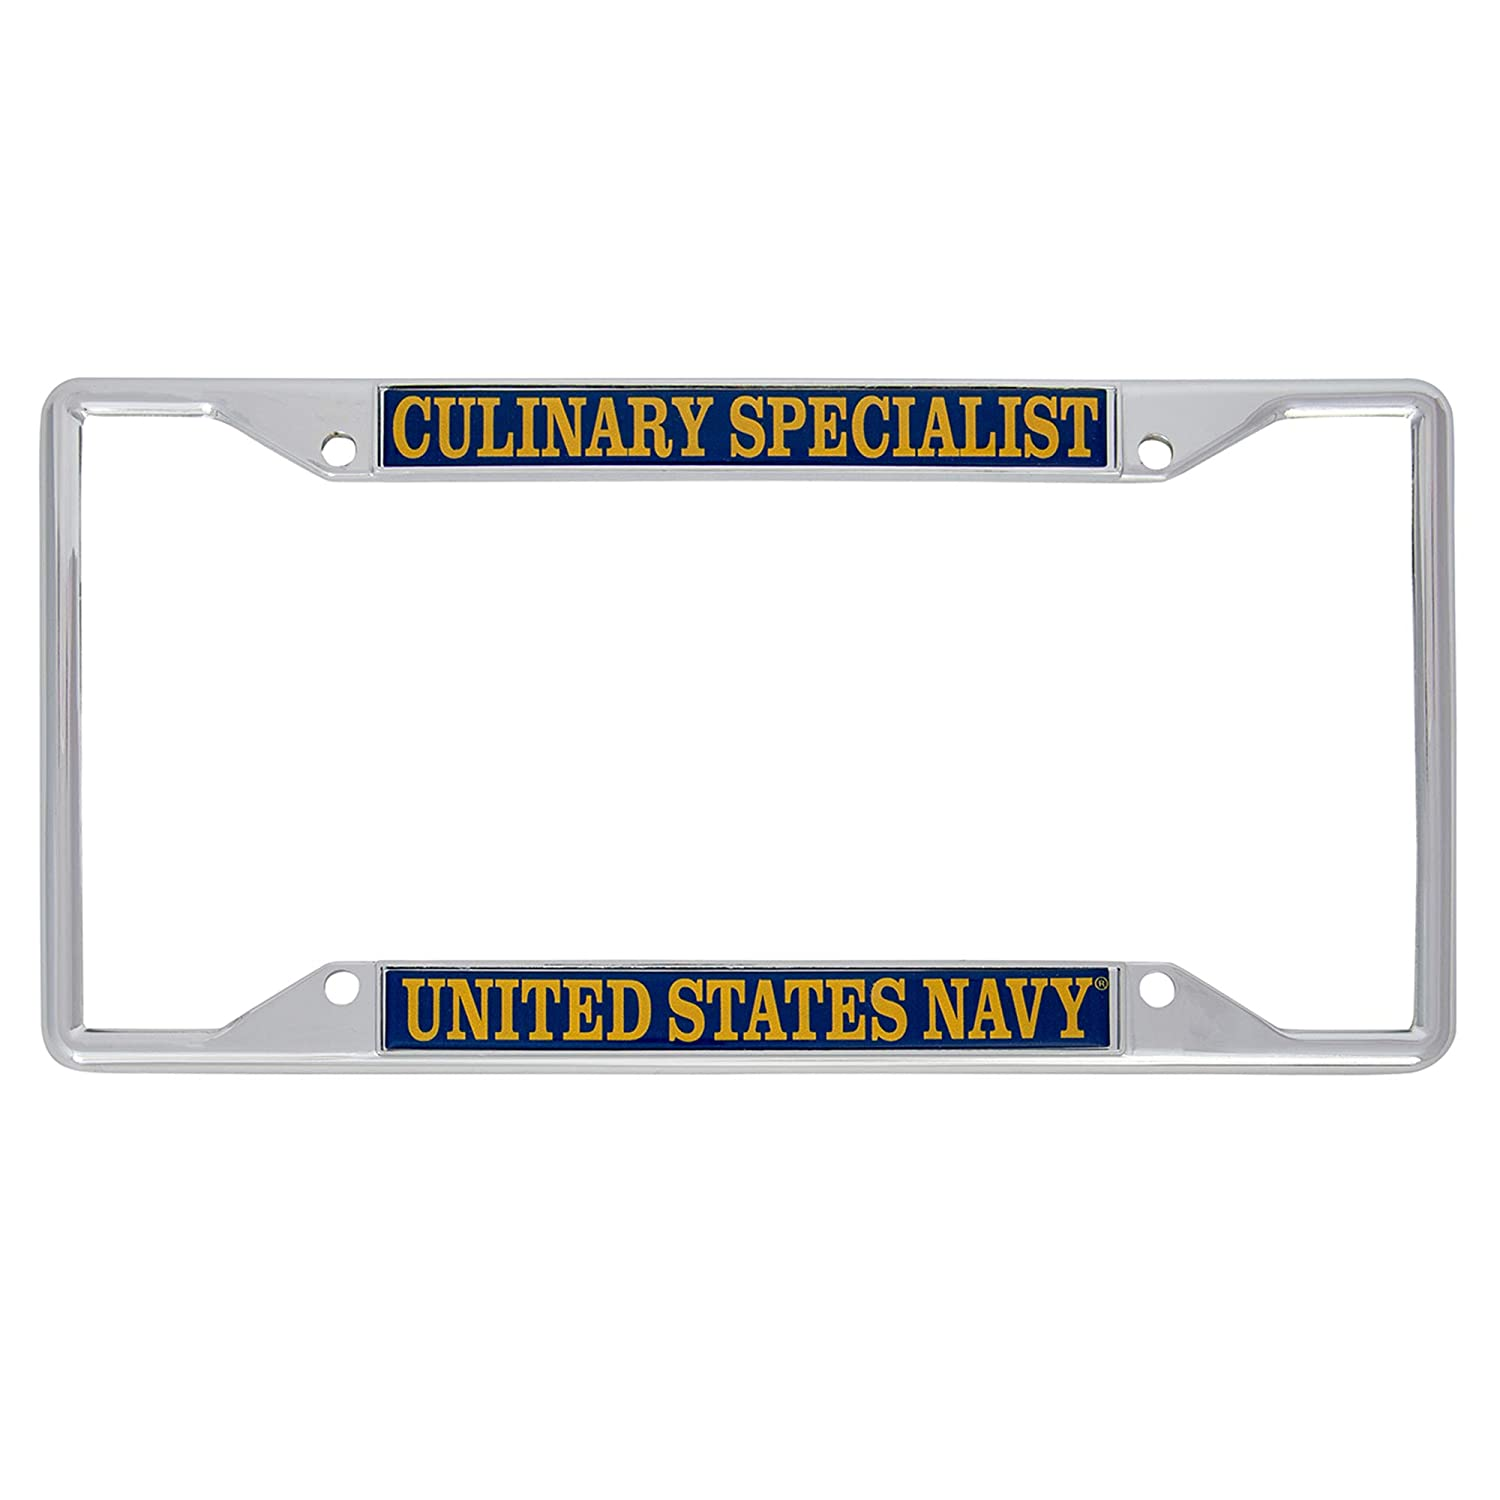 Desert Cactus US Navy Culinary Specialist Enlisted Rating Insignia License Plate Frame for Front Back of Car Officially Licensed United States